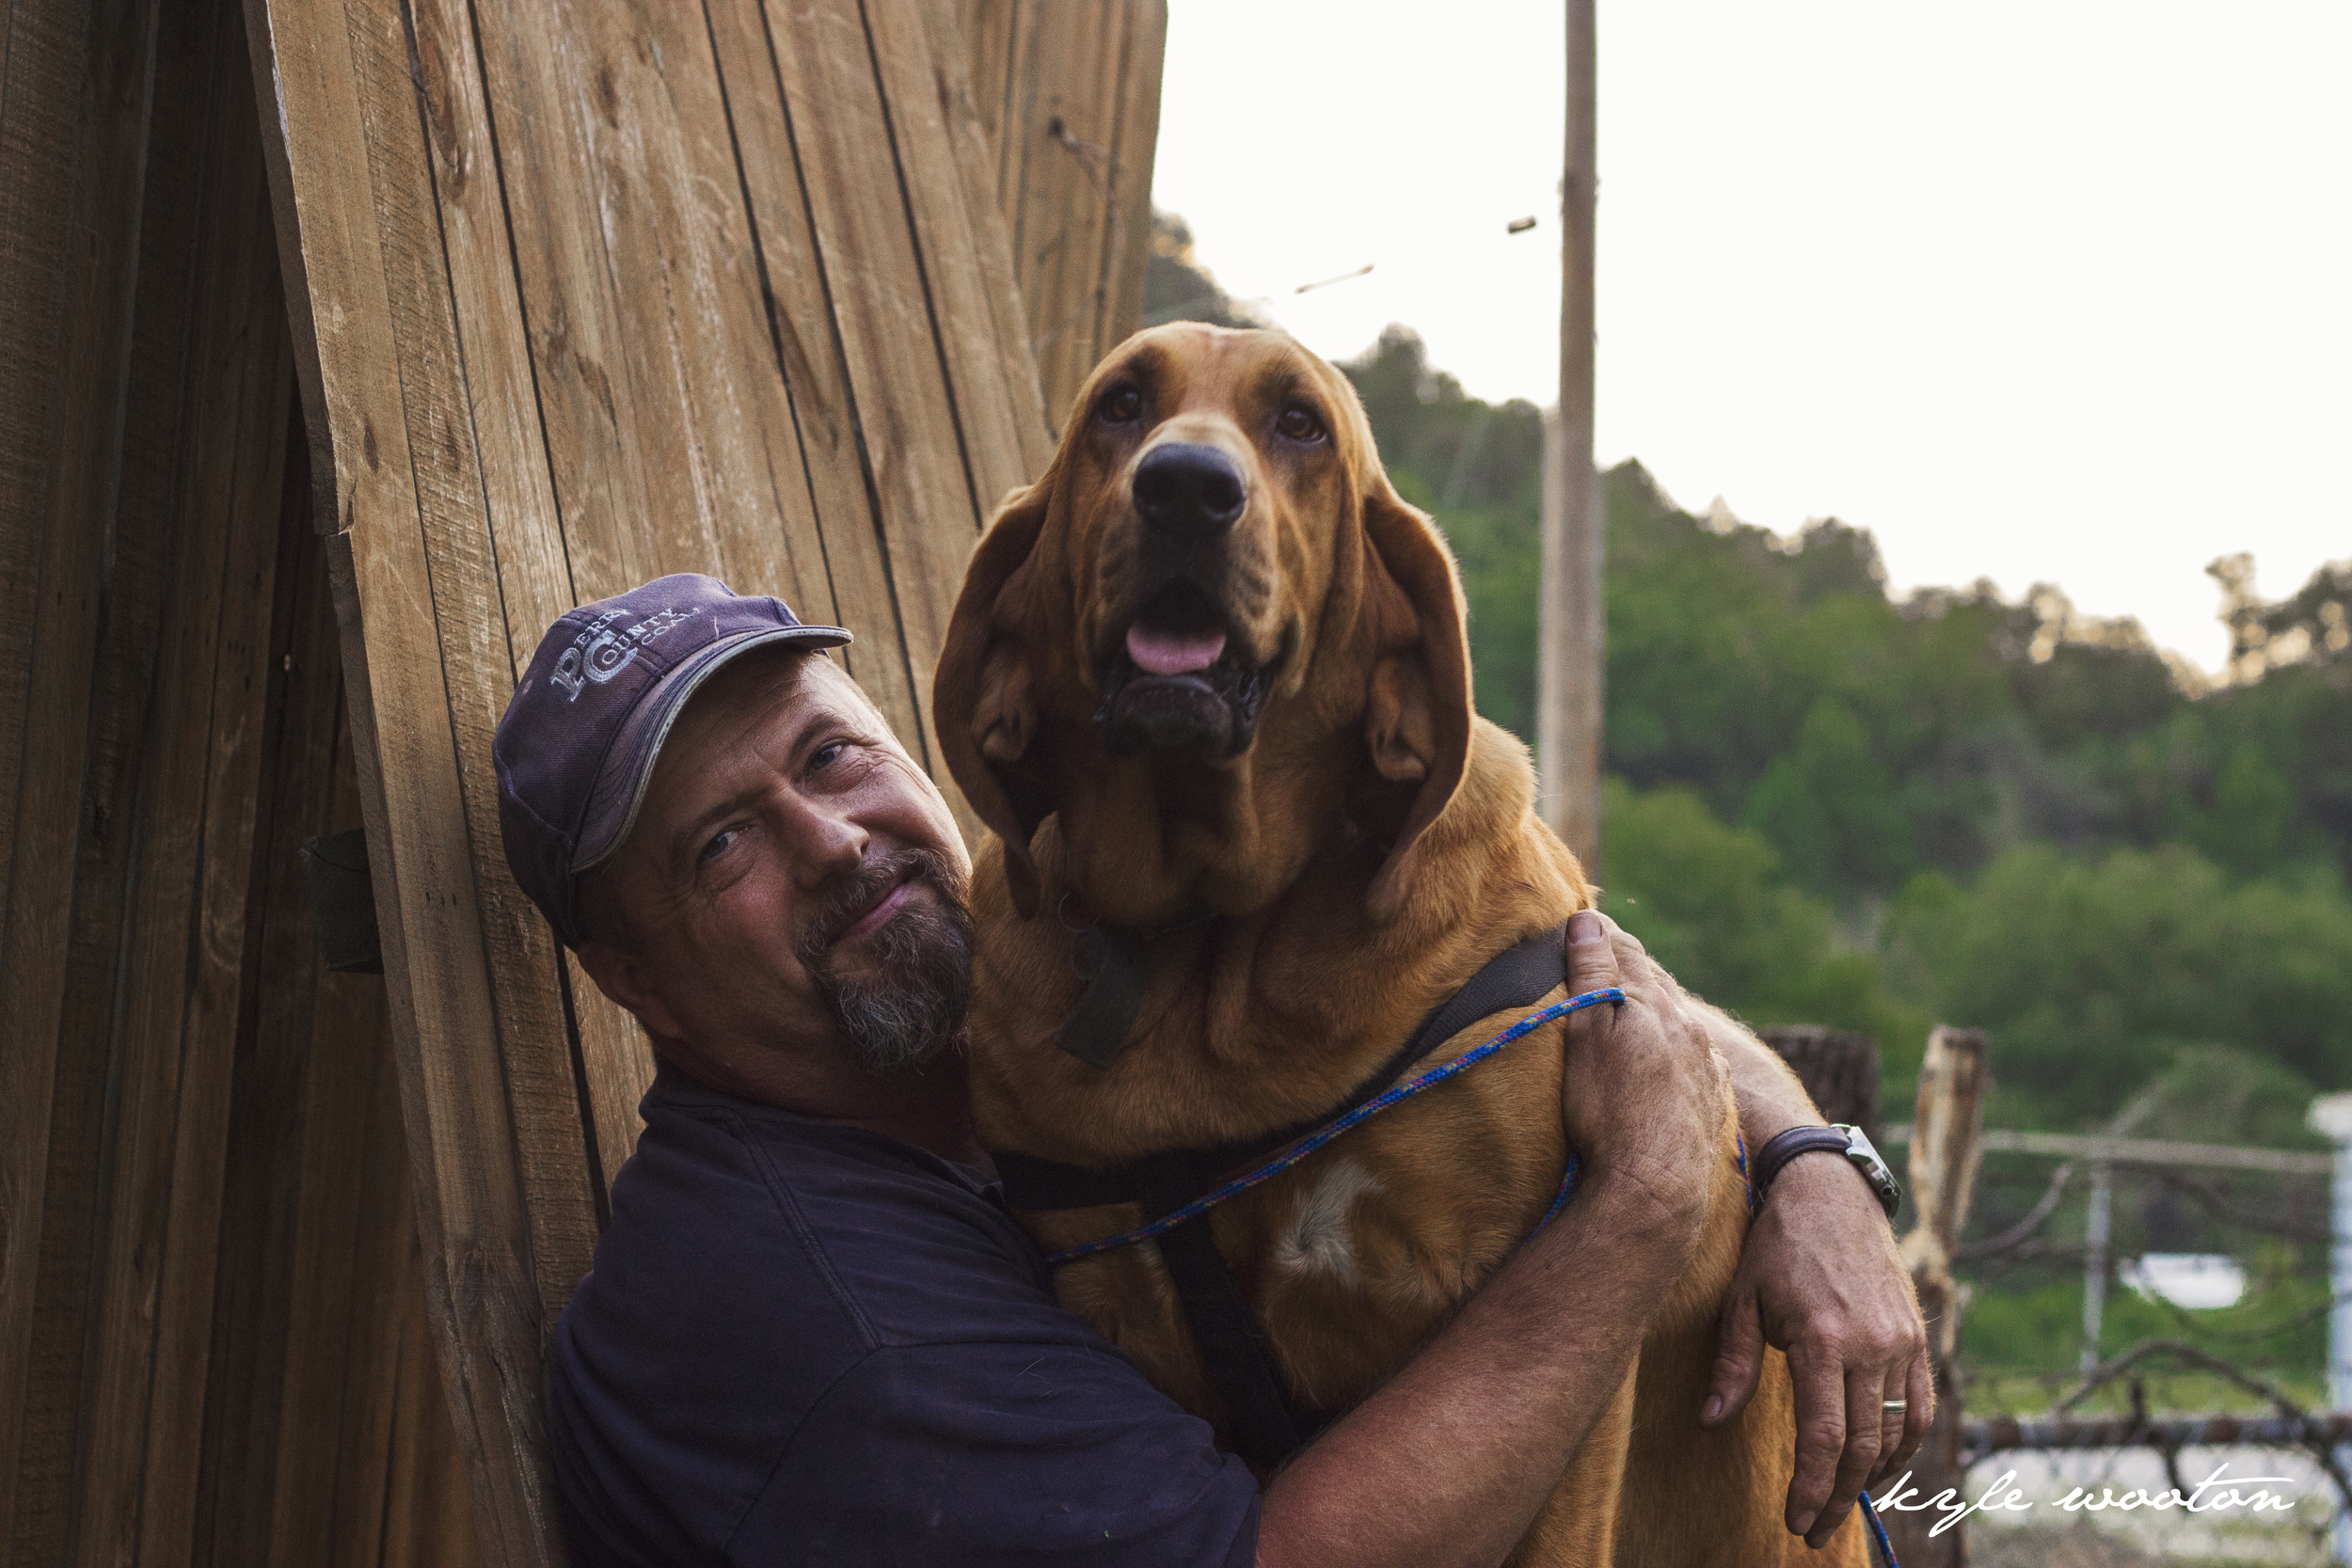 A coal miner at home, enjoying the day off with his bloodhound Sadie Bell. Photo by: Kyle Wooton